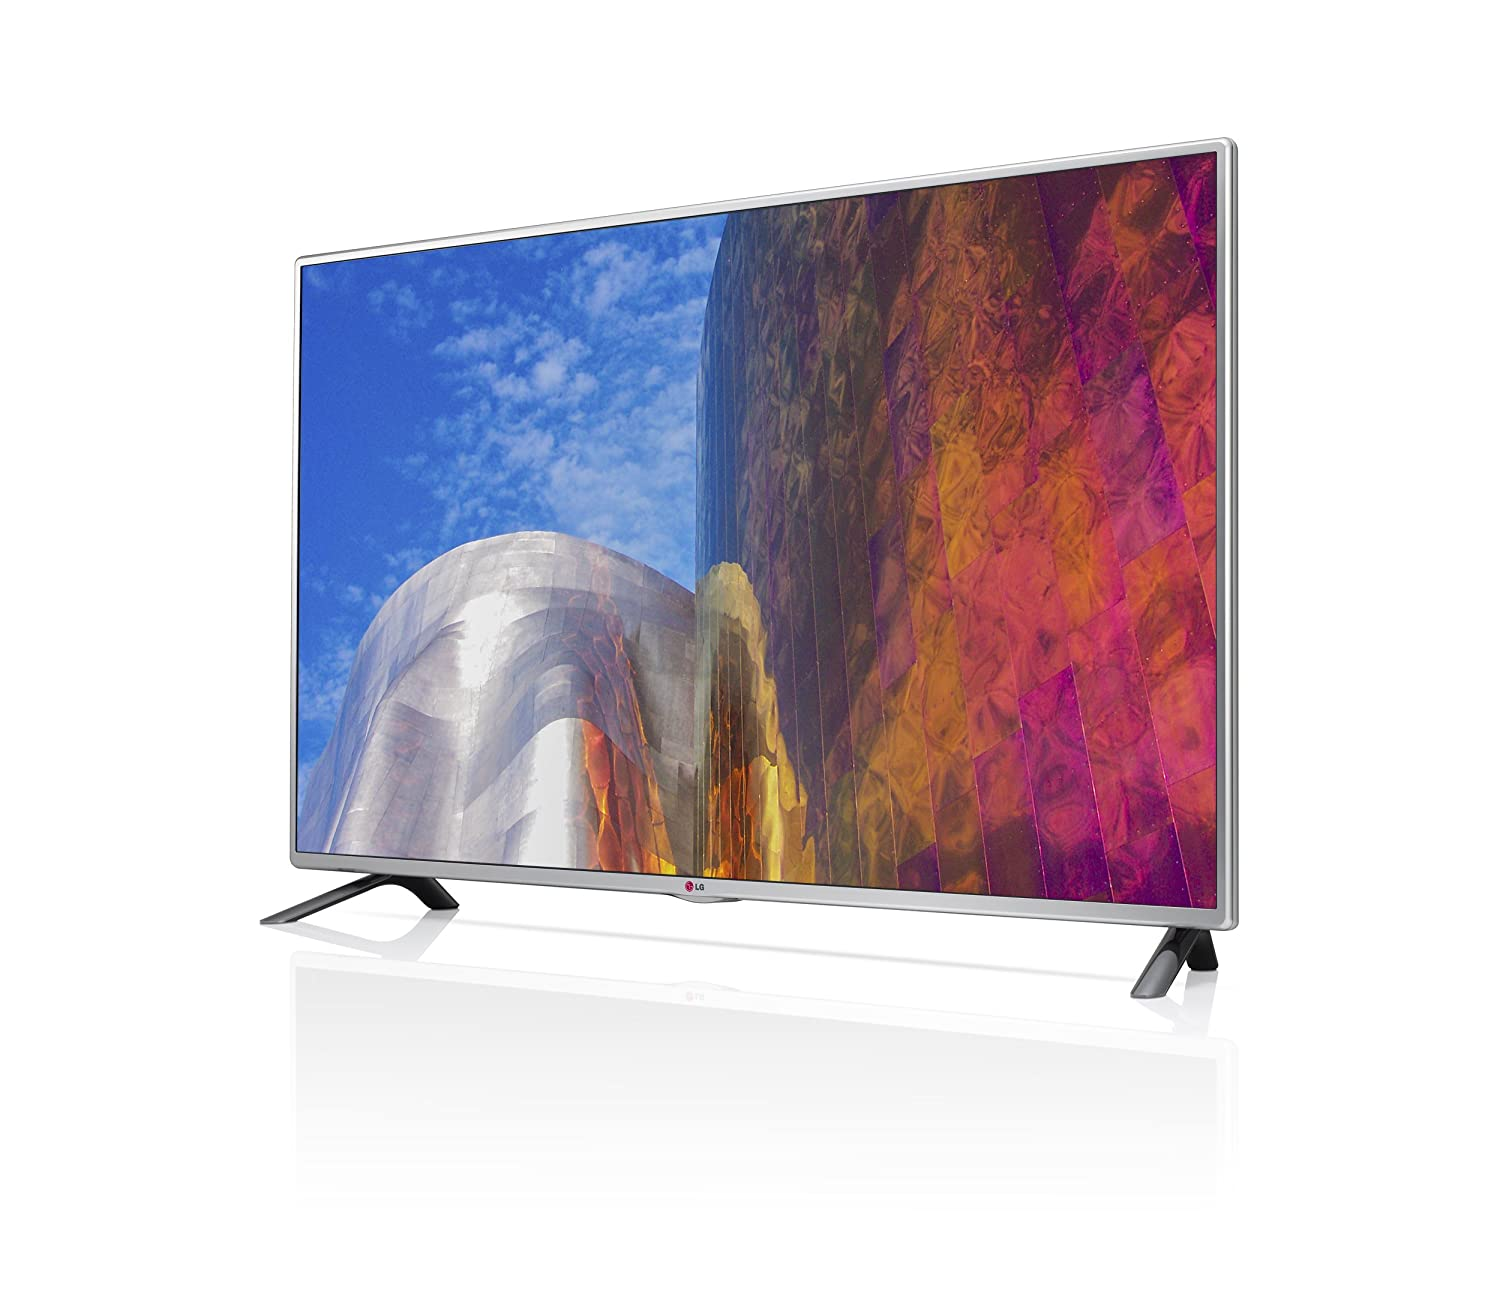 LG-Electronics-47LB5900-47-Inch-1080p-120Hz-LED-TV